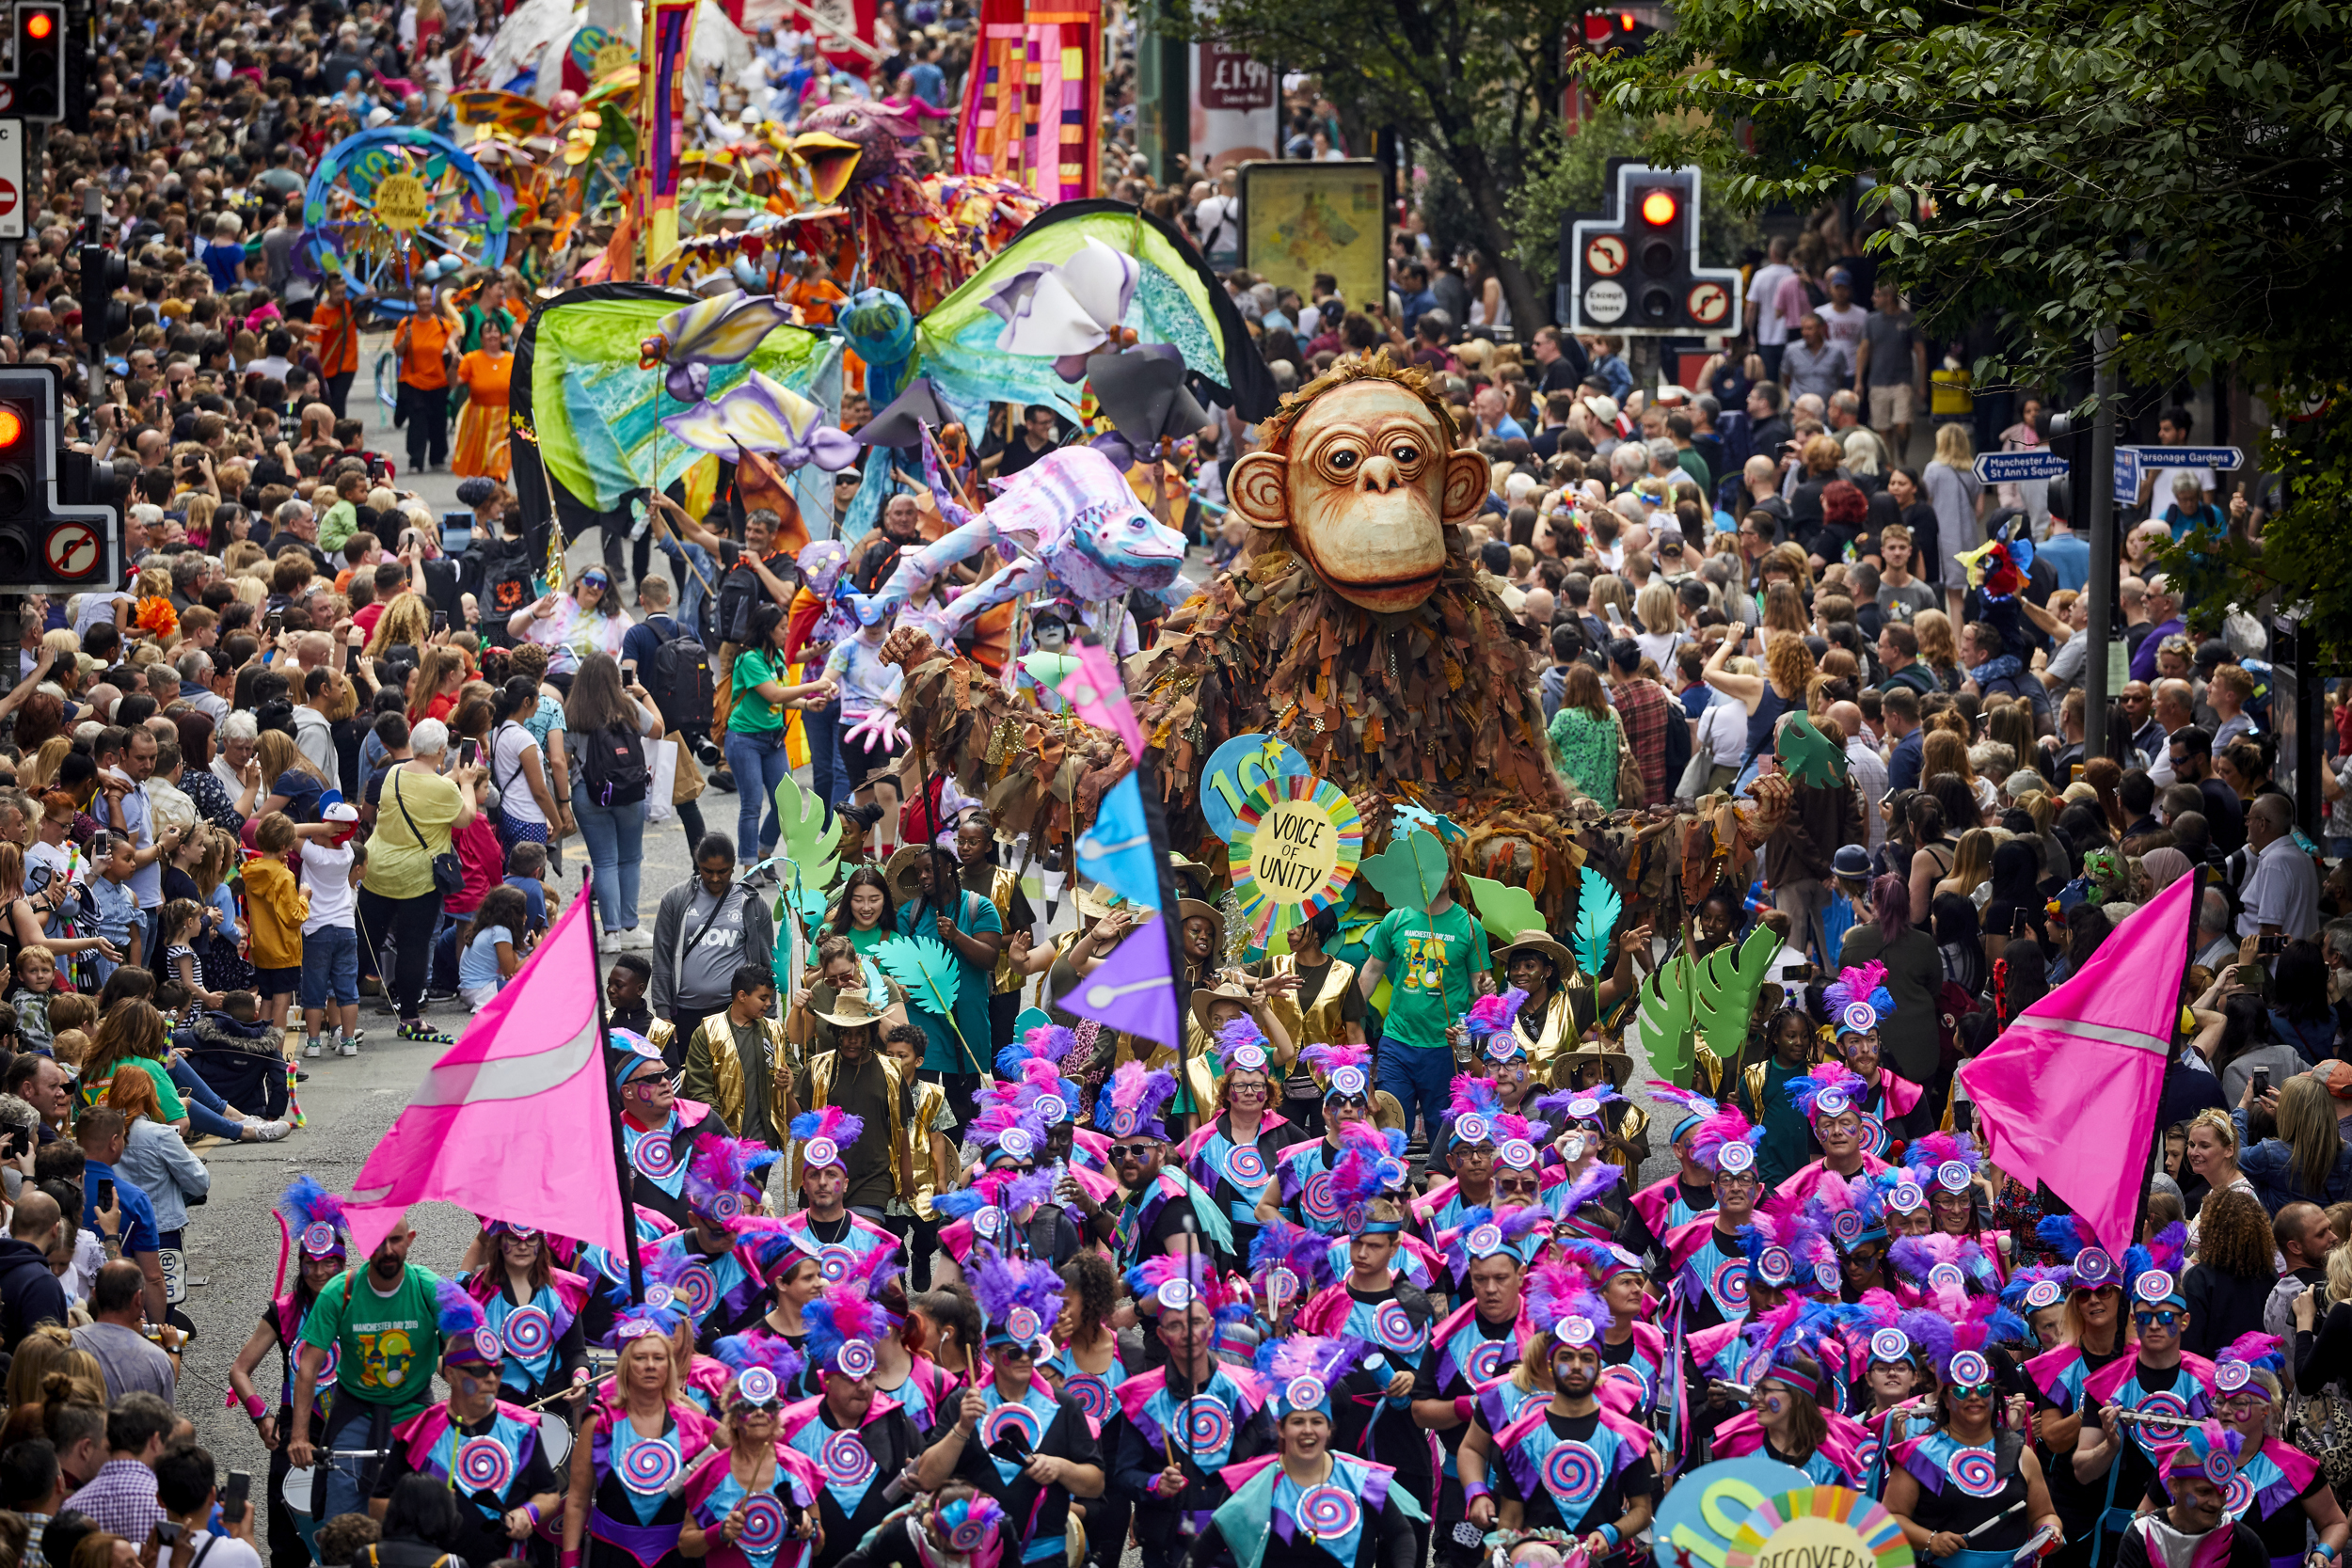 THE 10TH annual Manchester Day parade